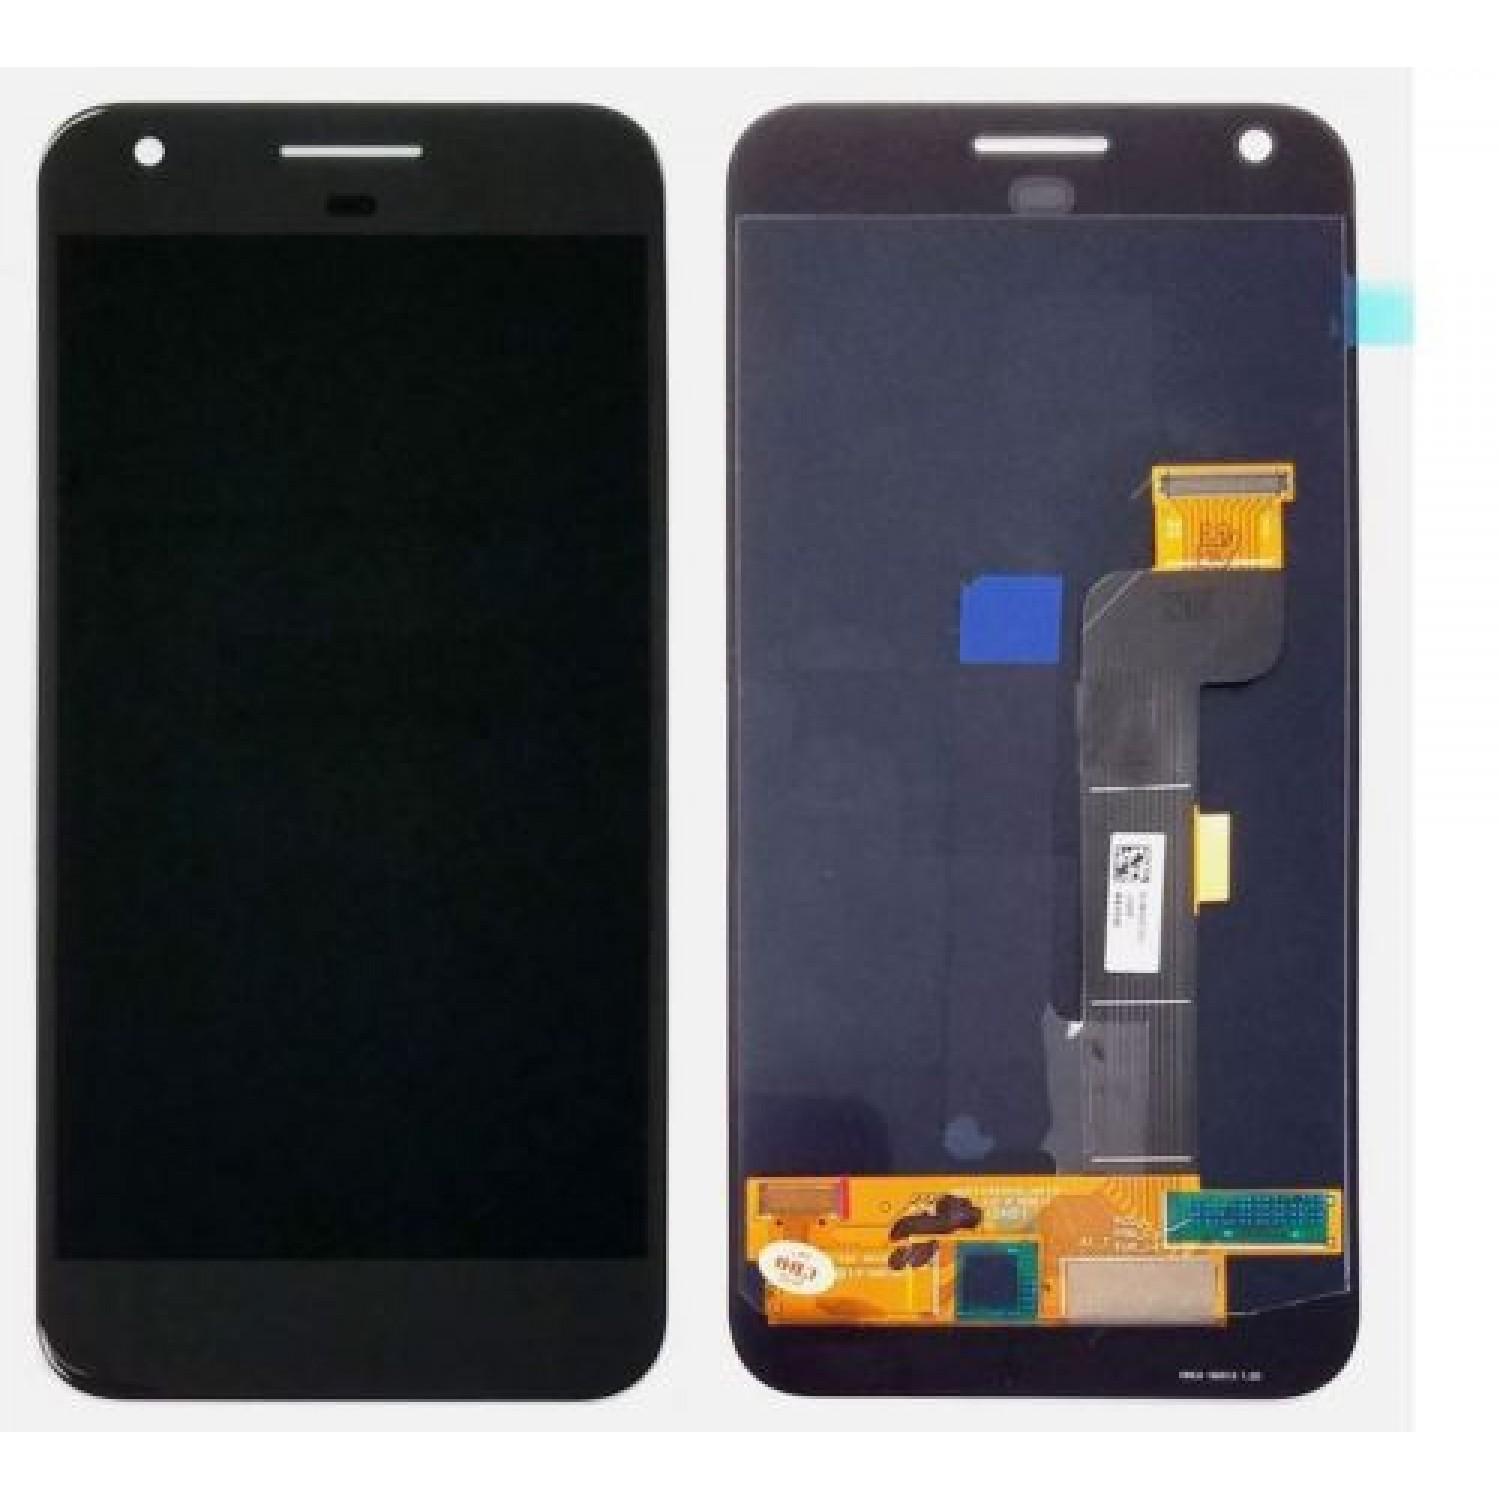 lcd digitizer assembly for Google Pixel 1st Gen (used good condition)